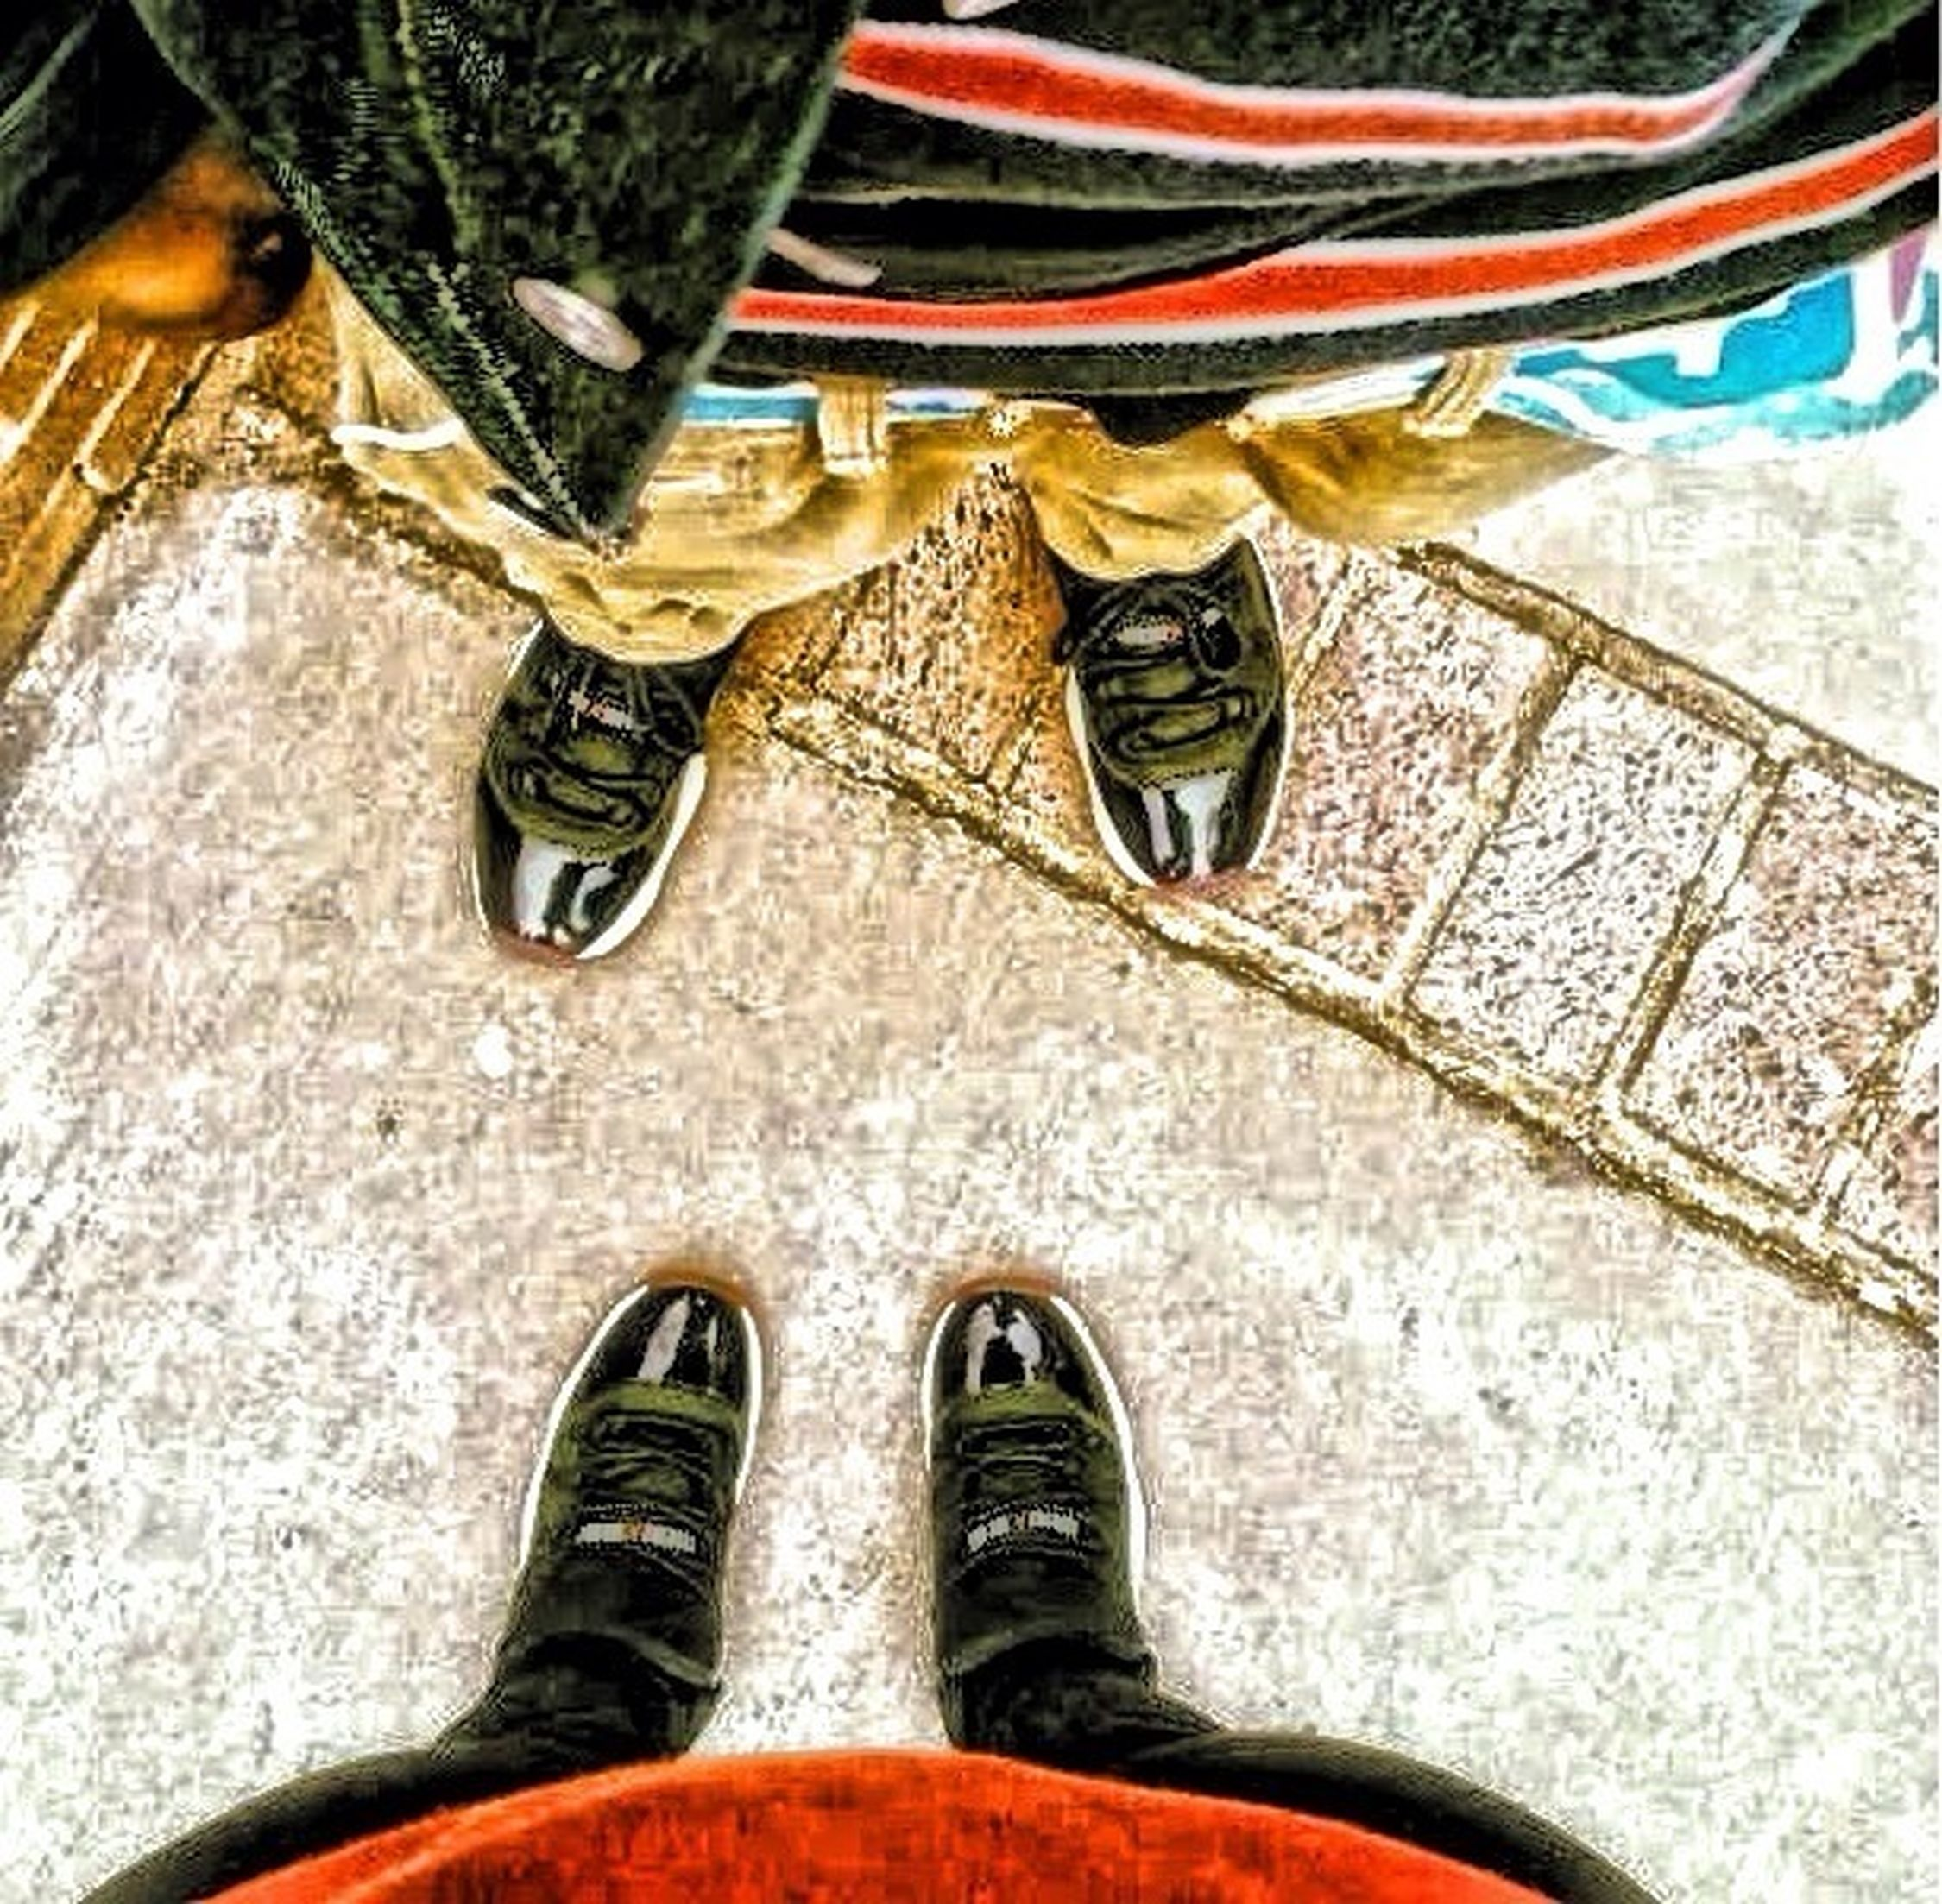 Me and Asia rocking bred 11s